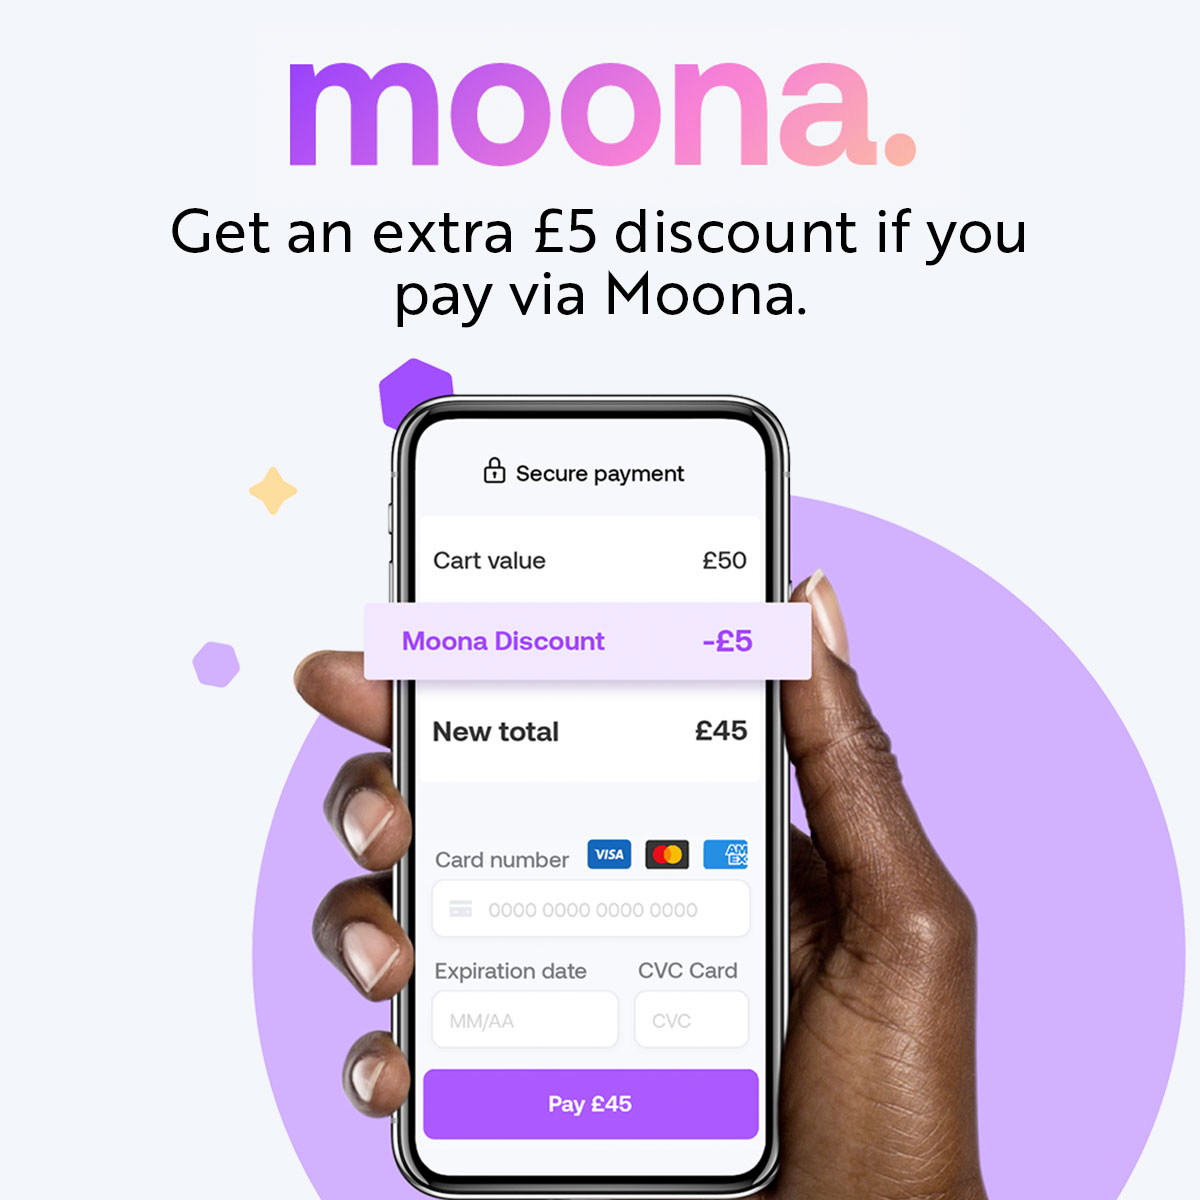 £5 discount if you pay with Moona